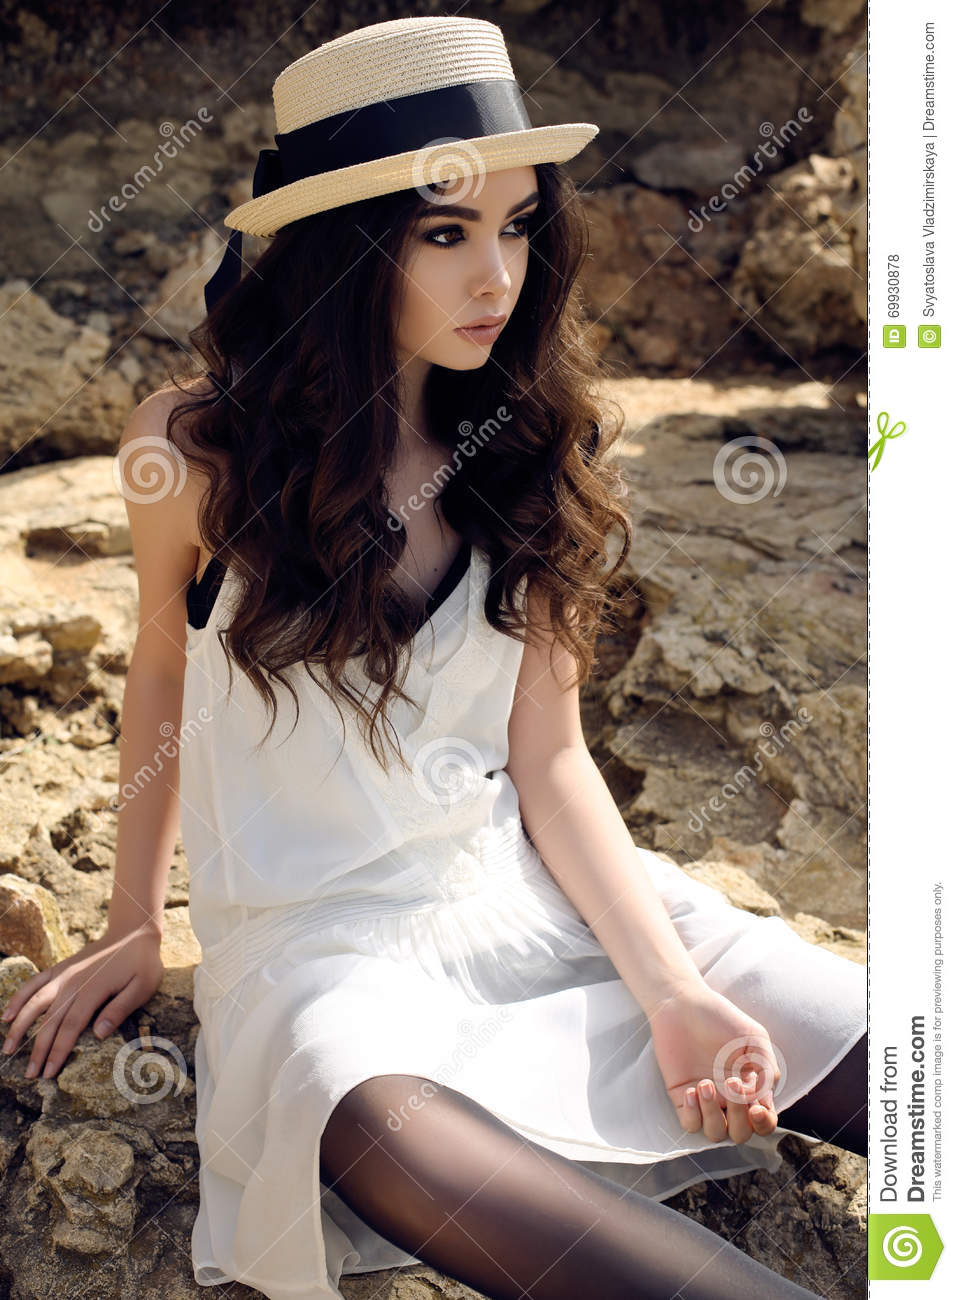 06f9dd649cc Fashion outdoor photo of beautiful girl with dark hair wears casual elegant  clothes and hat posing at summer seacoast